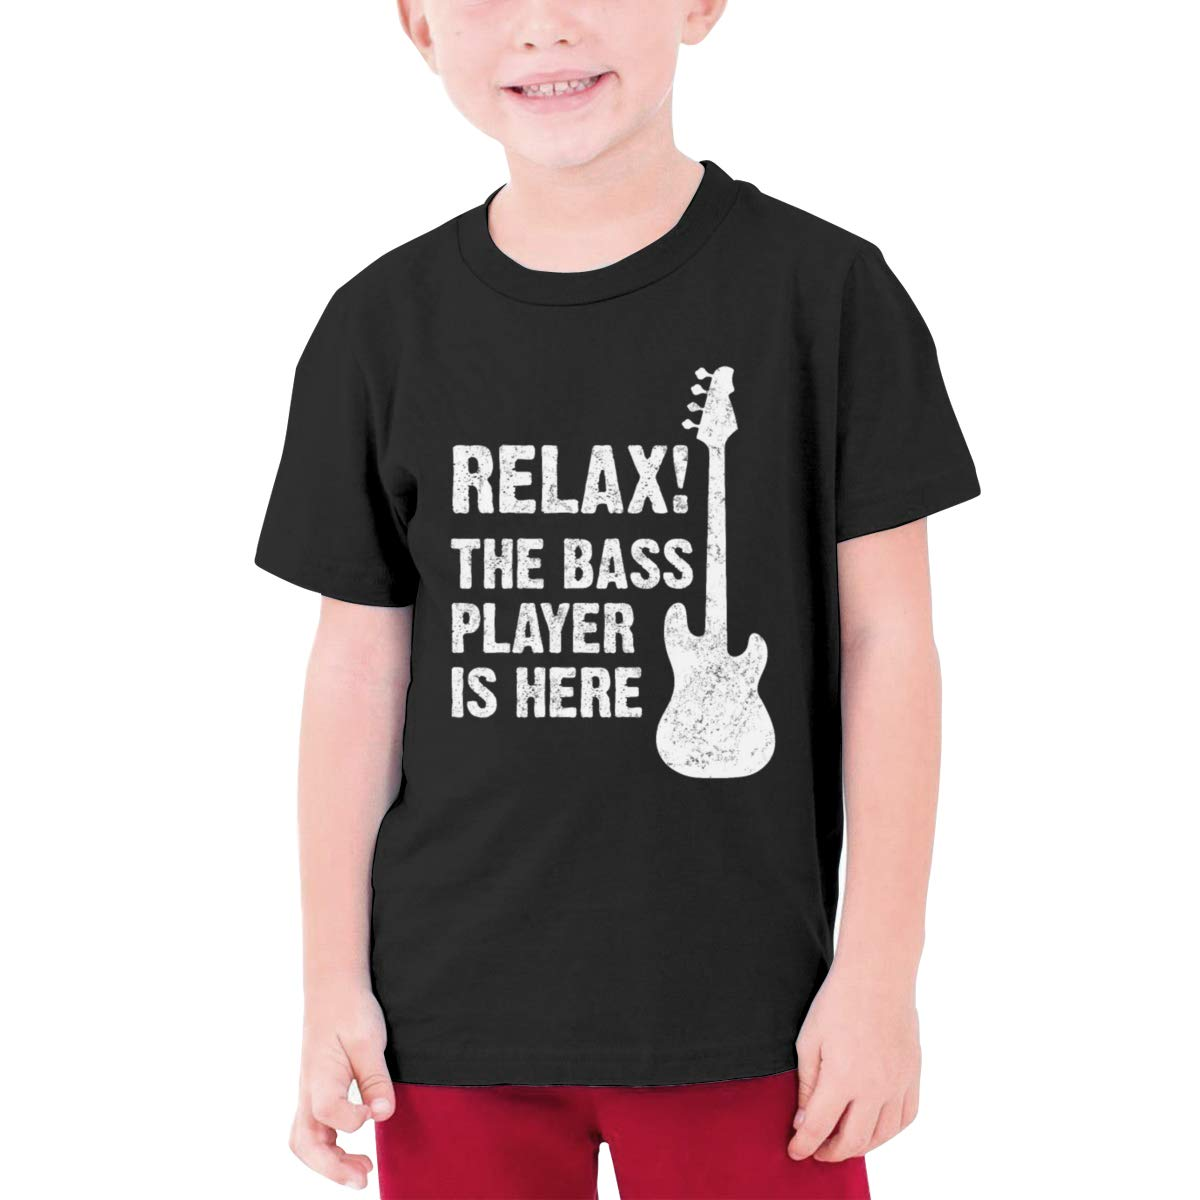 Relax The Bass Player is Here Boy Short-Sleeve Tee